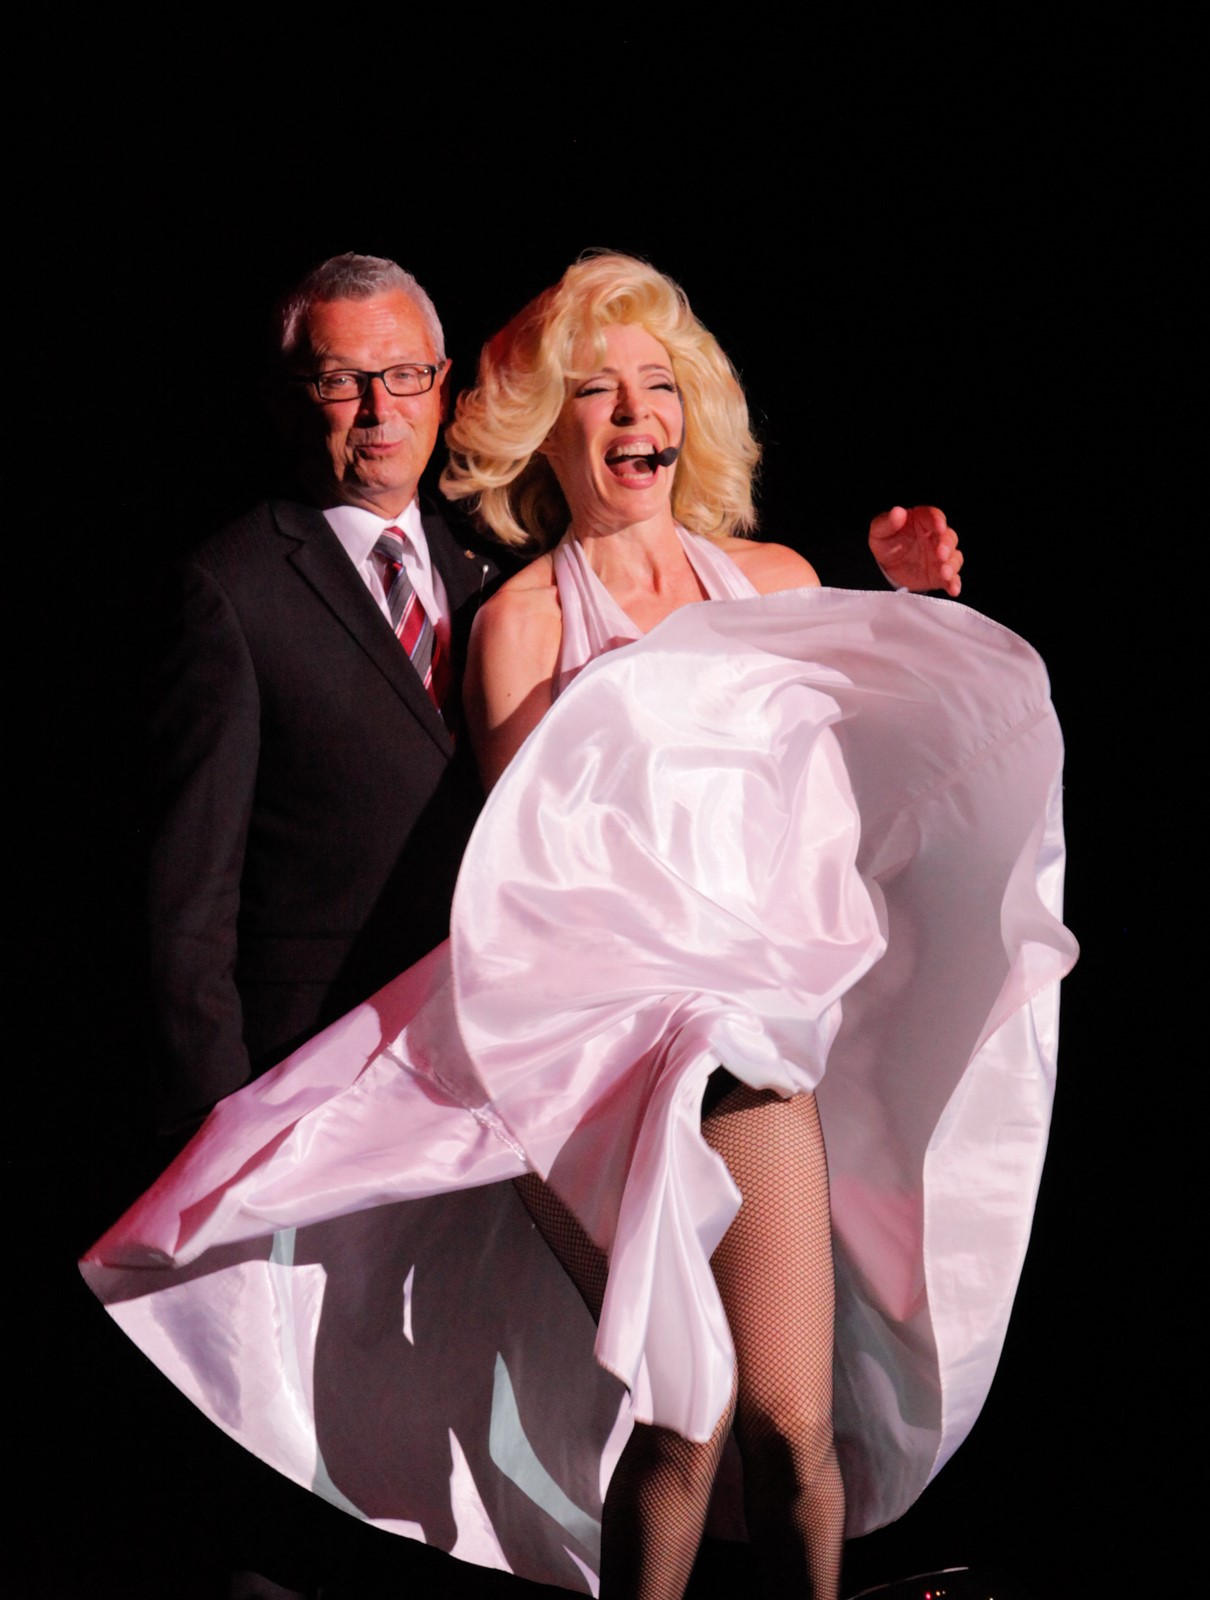 Tracey_Bell_impersonates_Marilyn_Monroe_(15932341953)